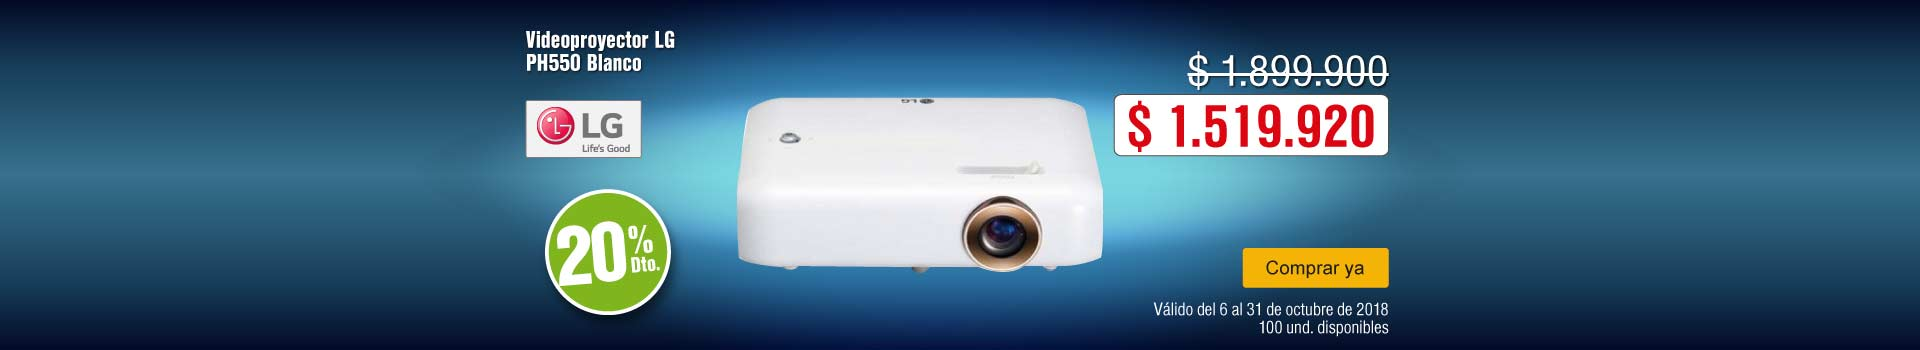 KT-BCAT-1-computadores y tablets-videoproyectores-PP---LG-Videoproyector PH550-Oct17